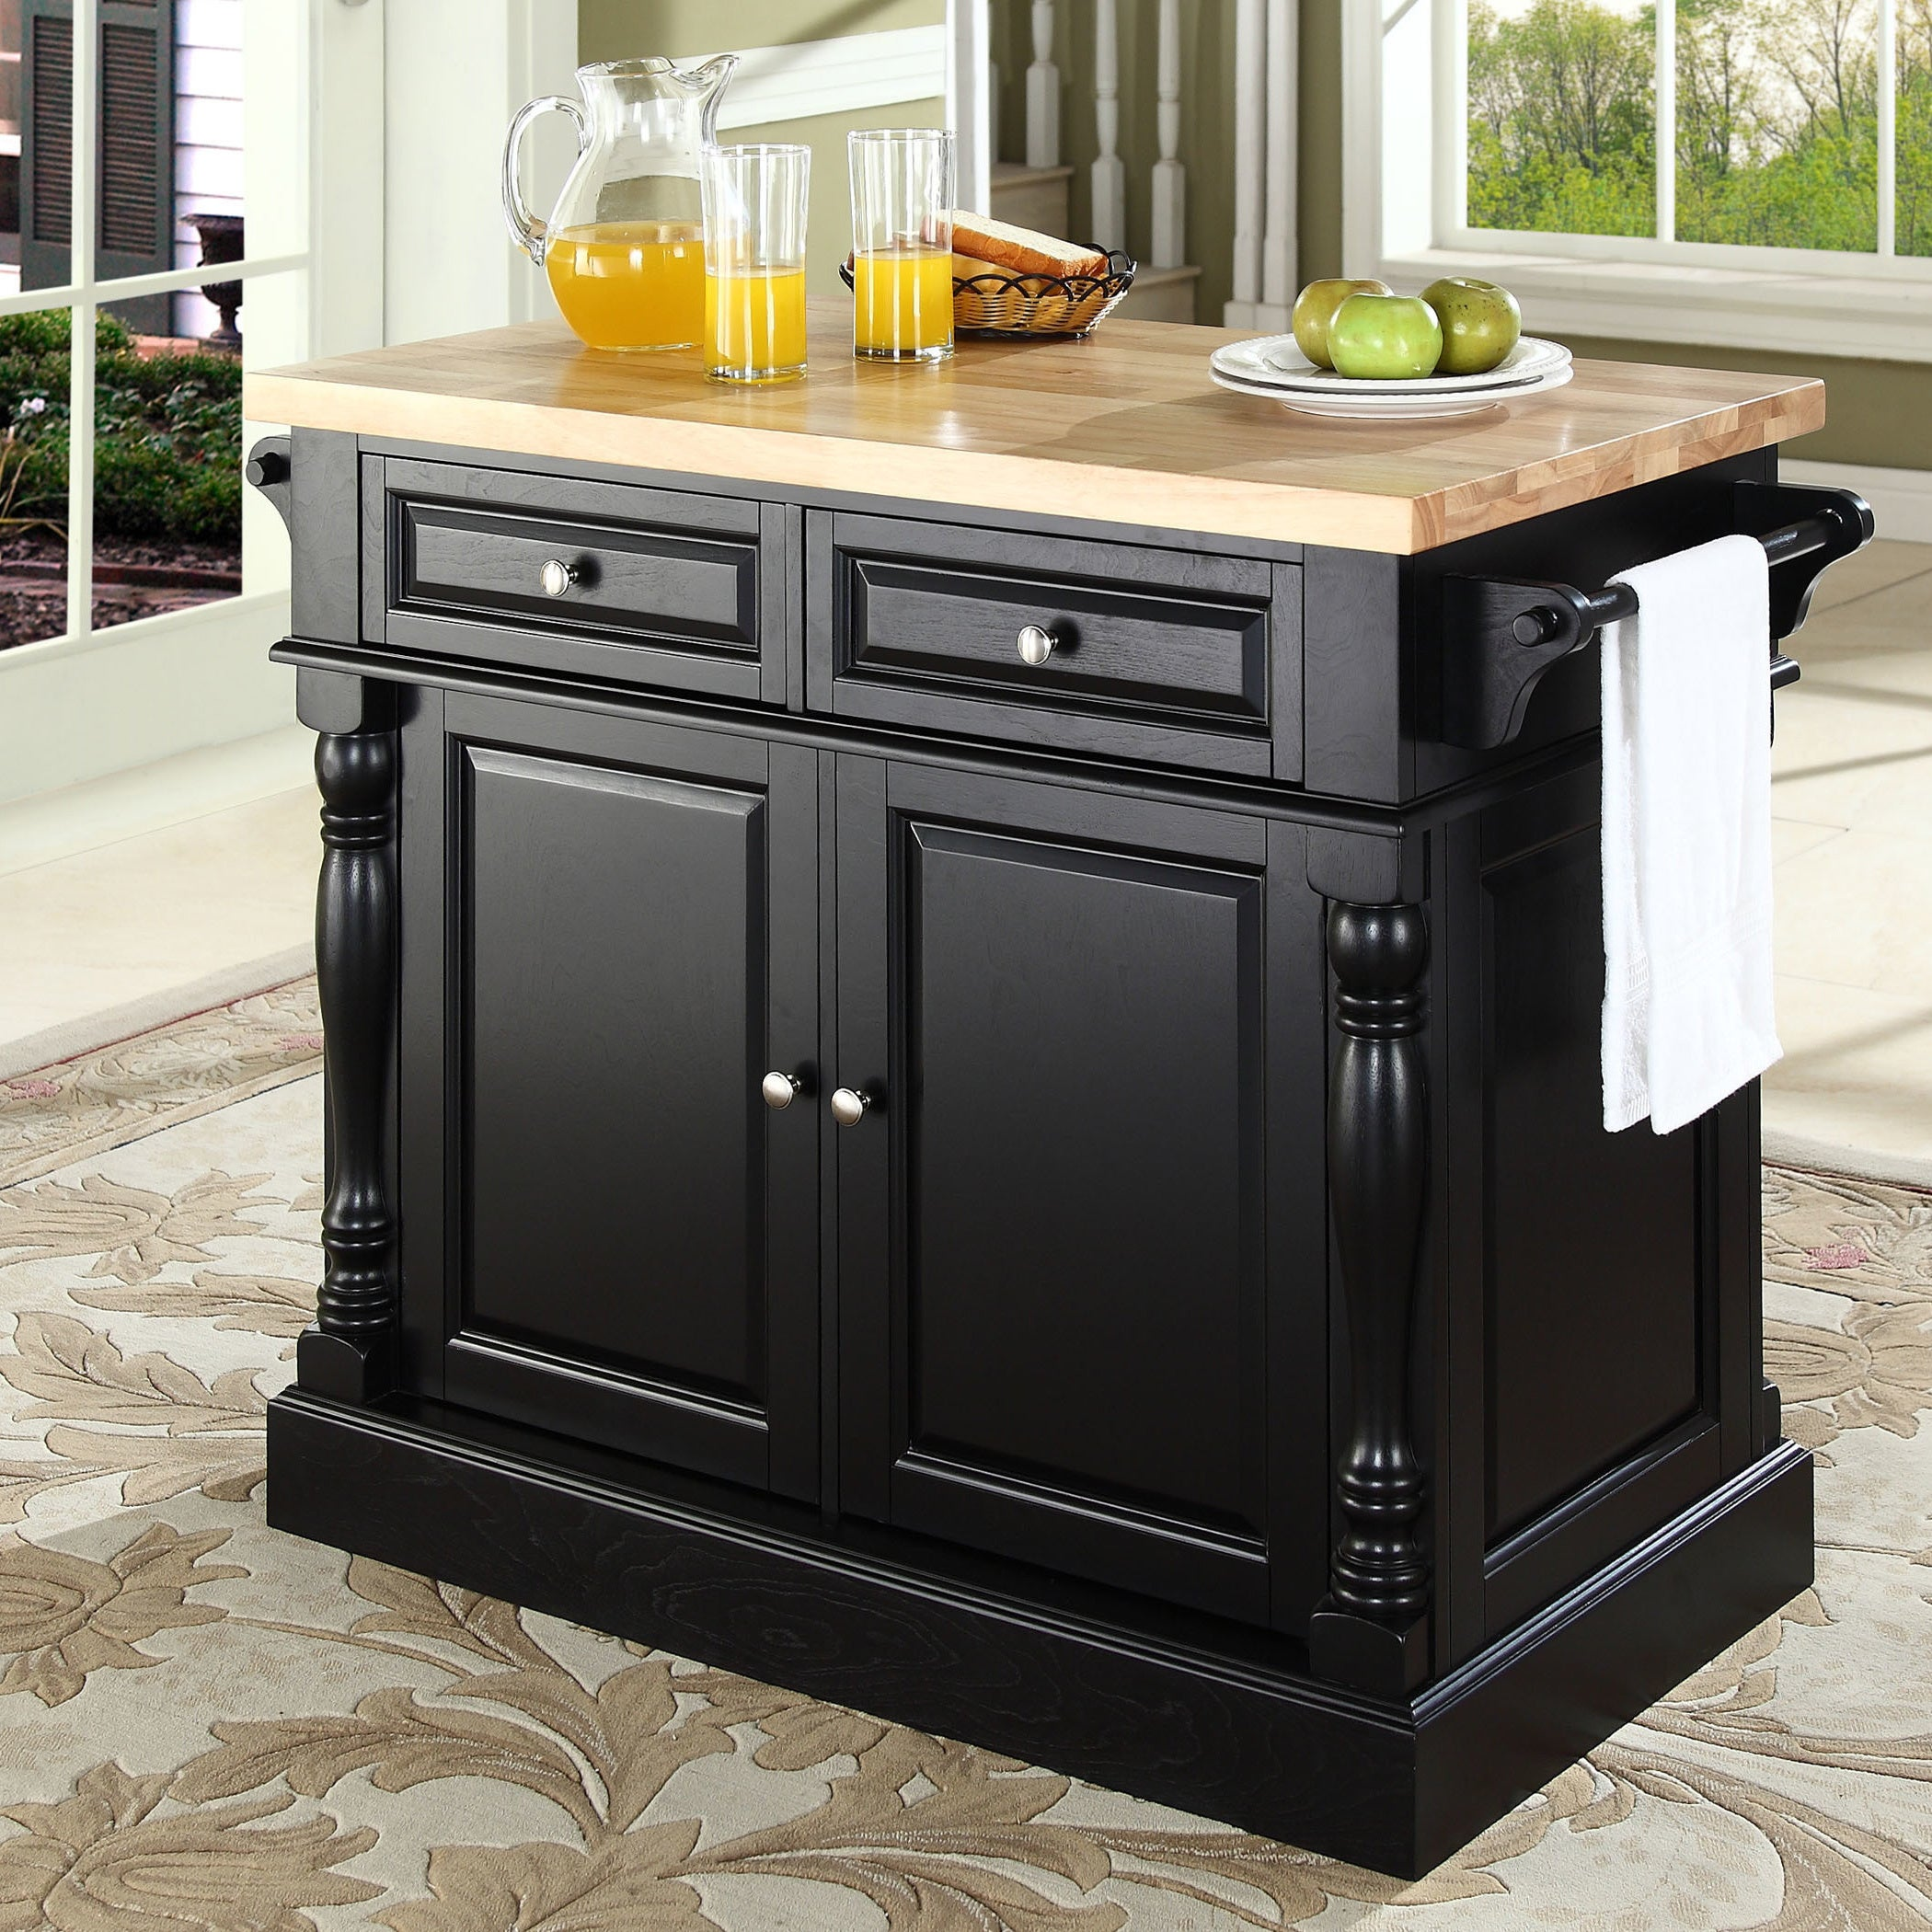 Shop Oxford Butcher Block Top Kitchen Island In Black Finish On Sale Overstock 16007504